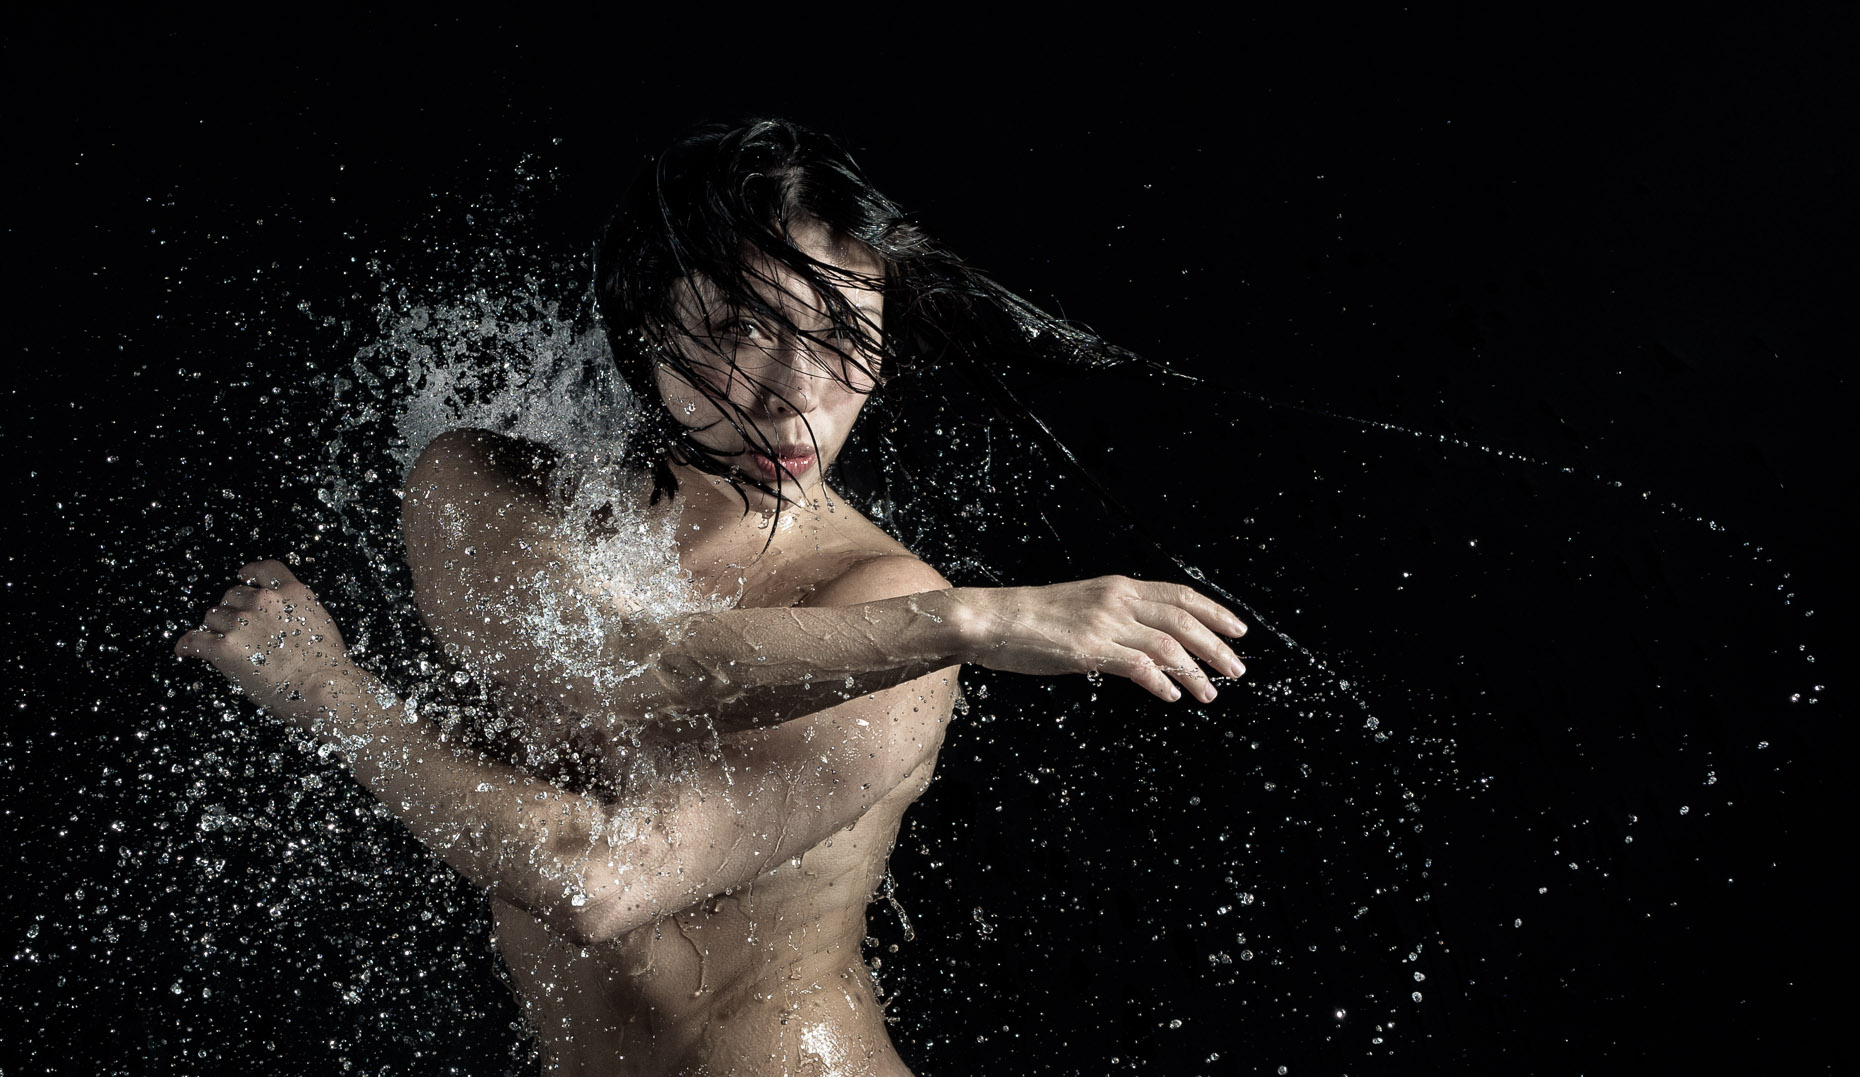 Kevin Steele -  studio portrait under falling water